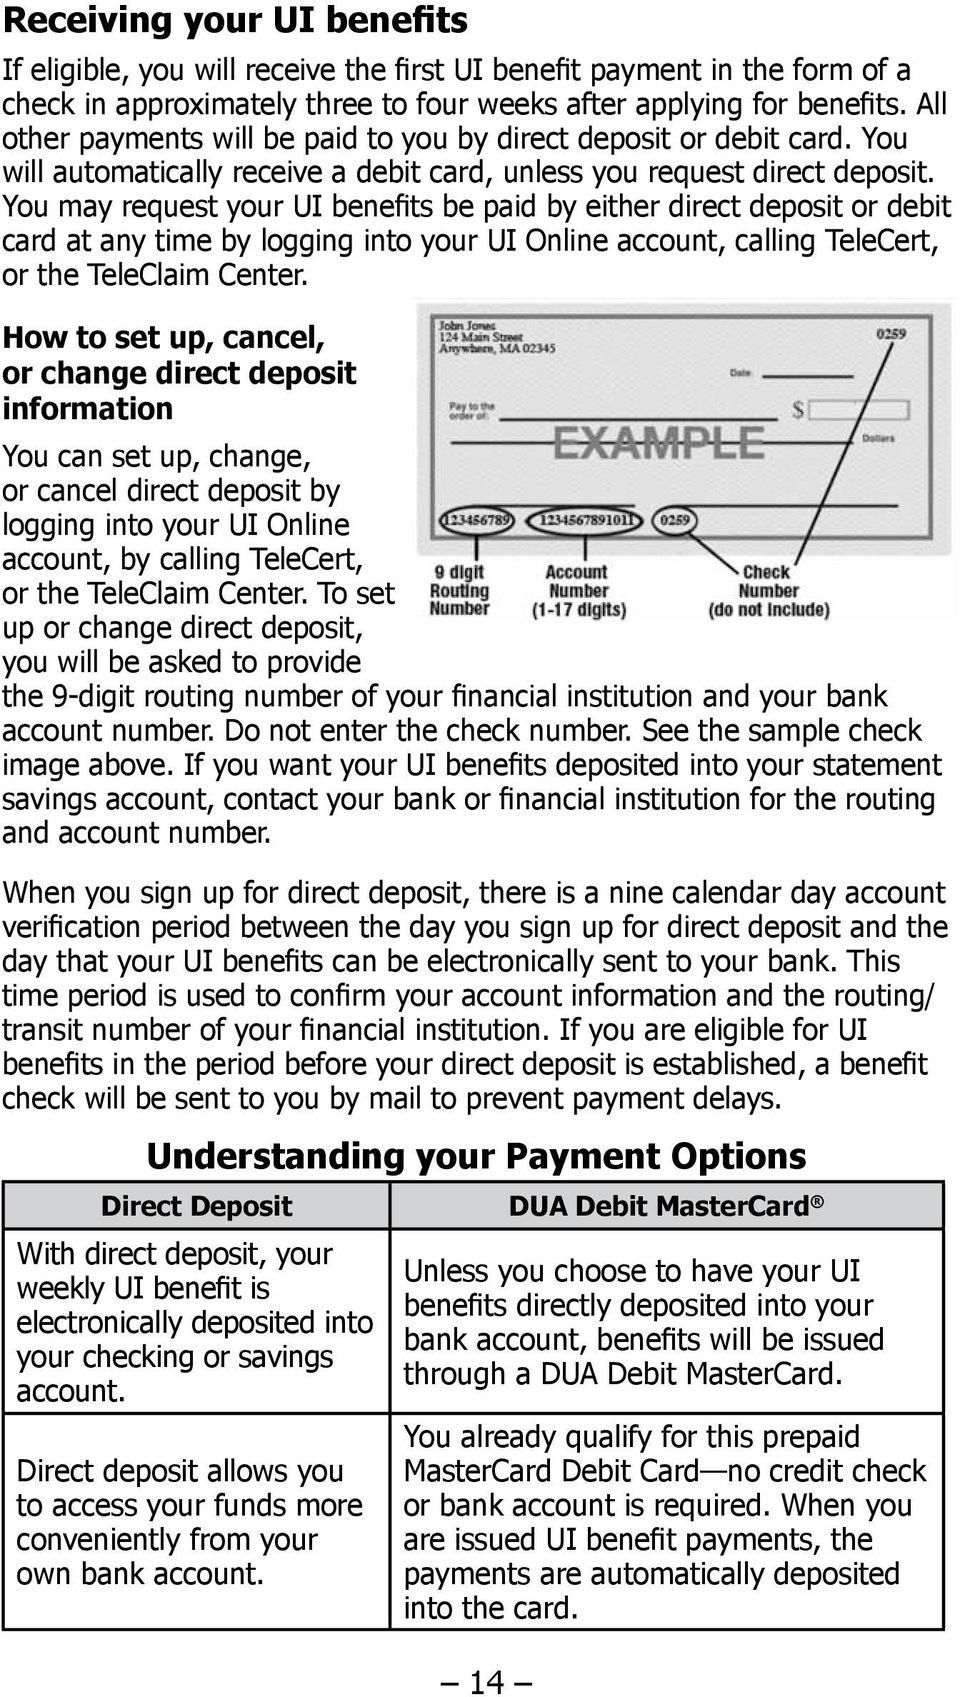 You may request your UI benefits be paid by either direct deposit or debit card at any time by logging into your UI Online account, calling TeleCert, or the TeleClaim Center.